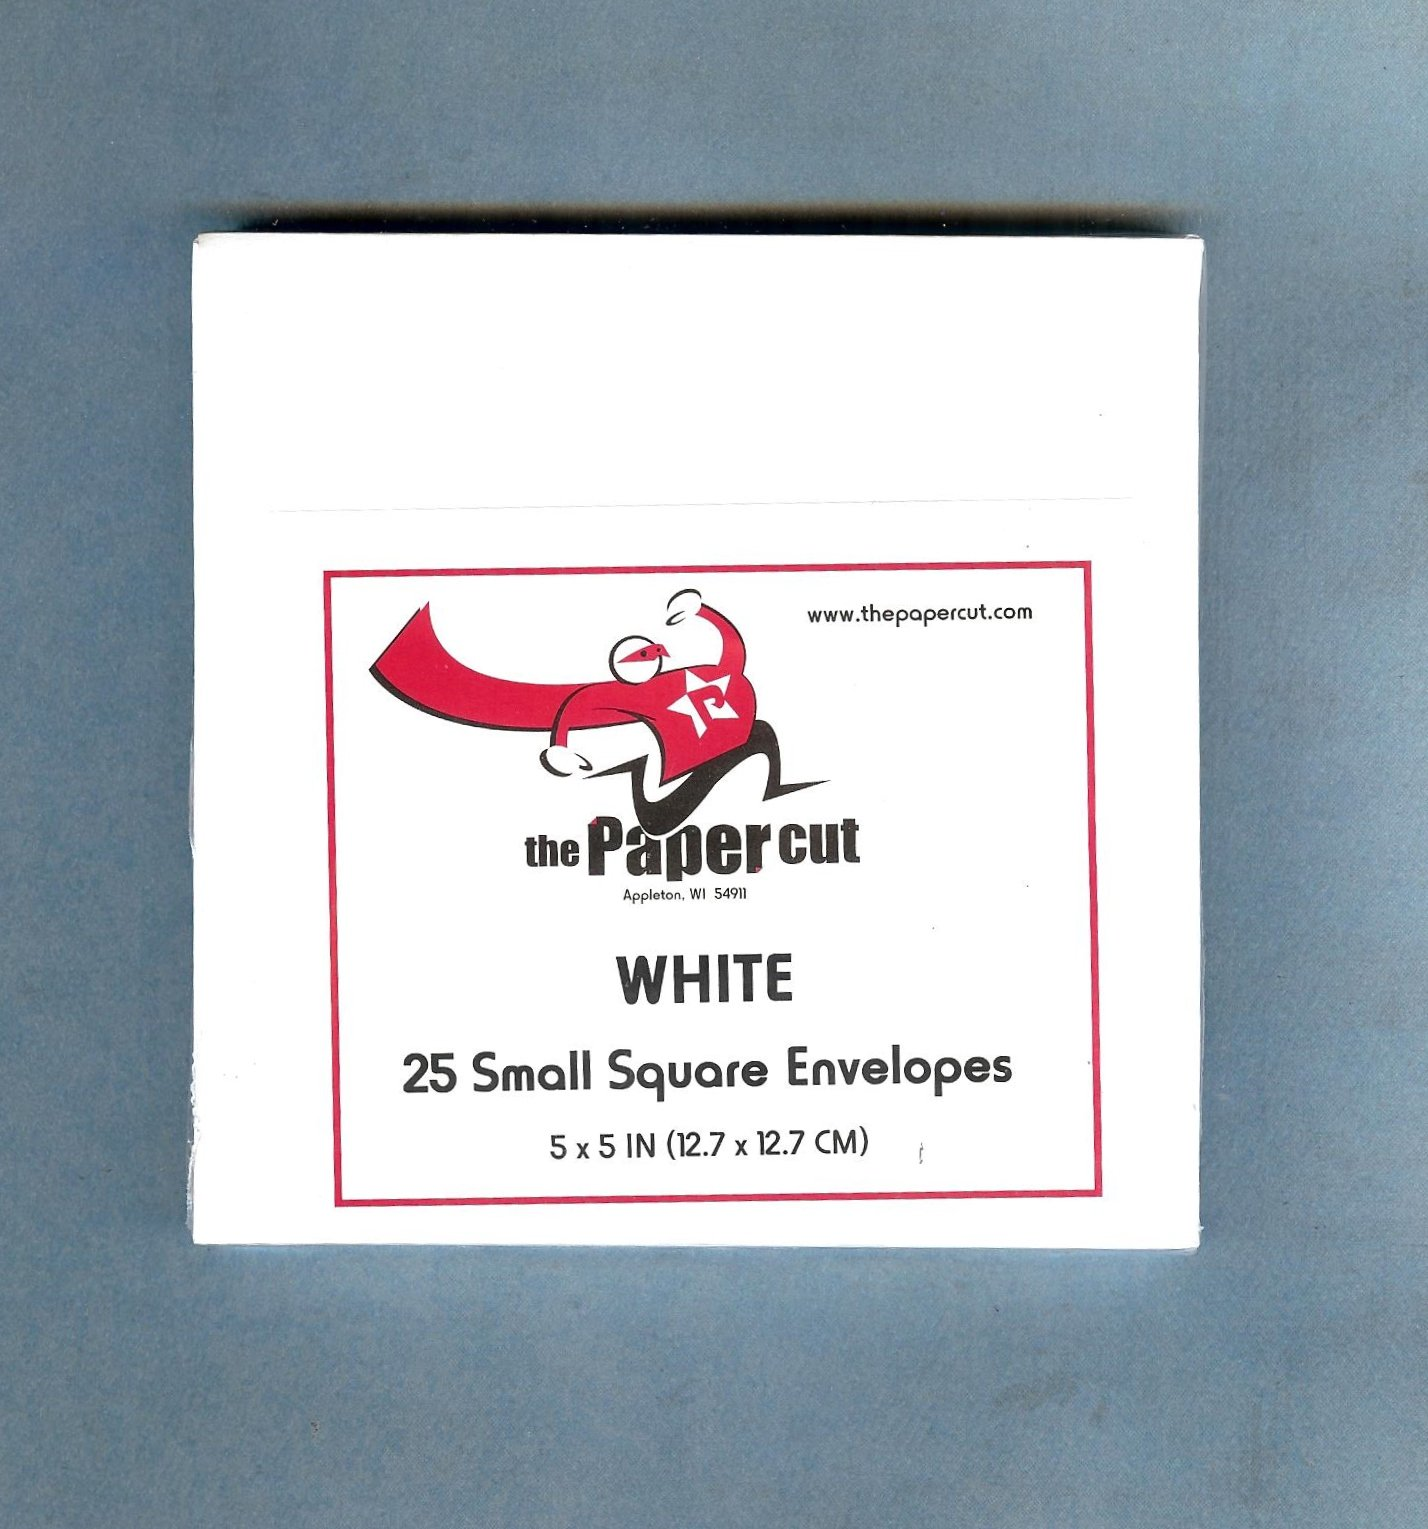 The Paper Cut, Small Square Envelopes, White, 25 count